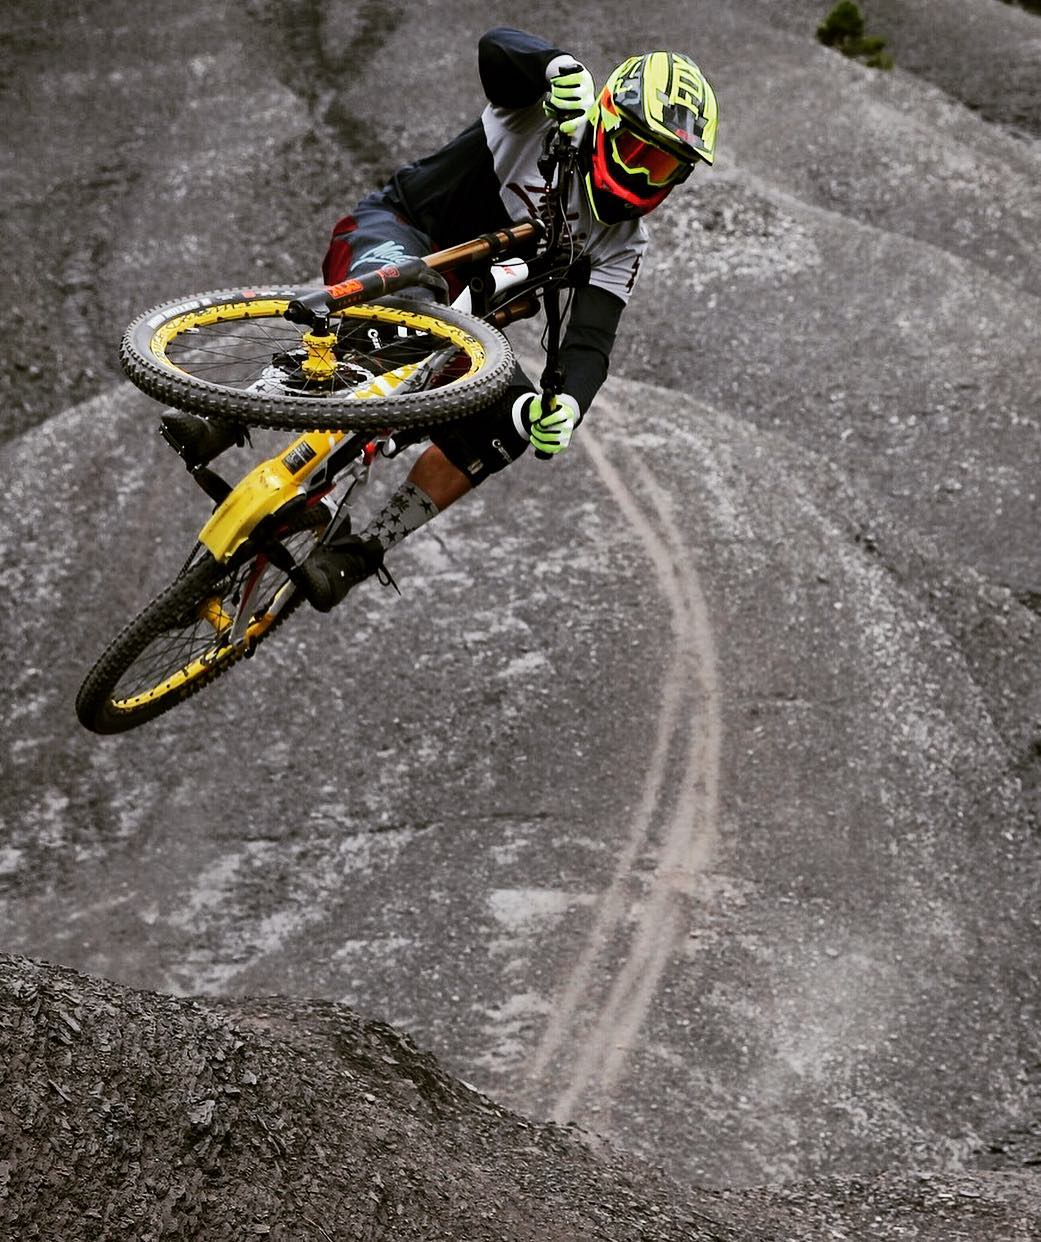 Martin Erd nailing this shot of @tschugg23 ! #DH #mtb #Haibike #bikes #eperformance #jump #mountainbike #xduro #bosch #ride100percent